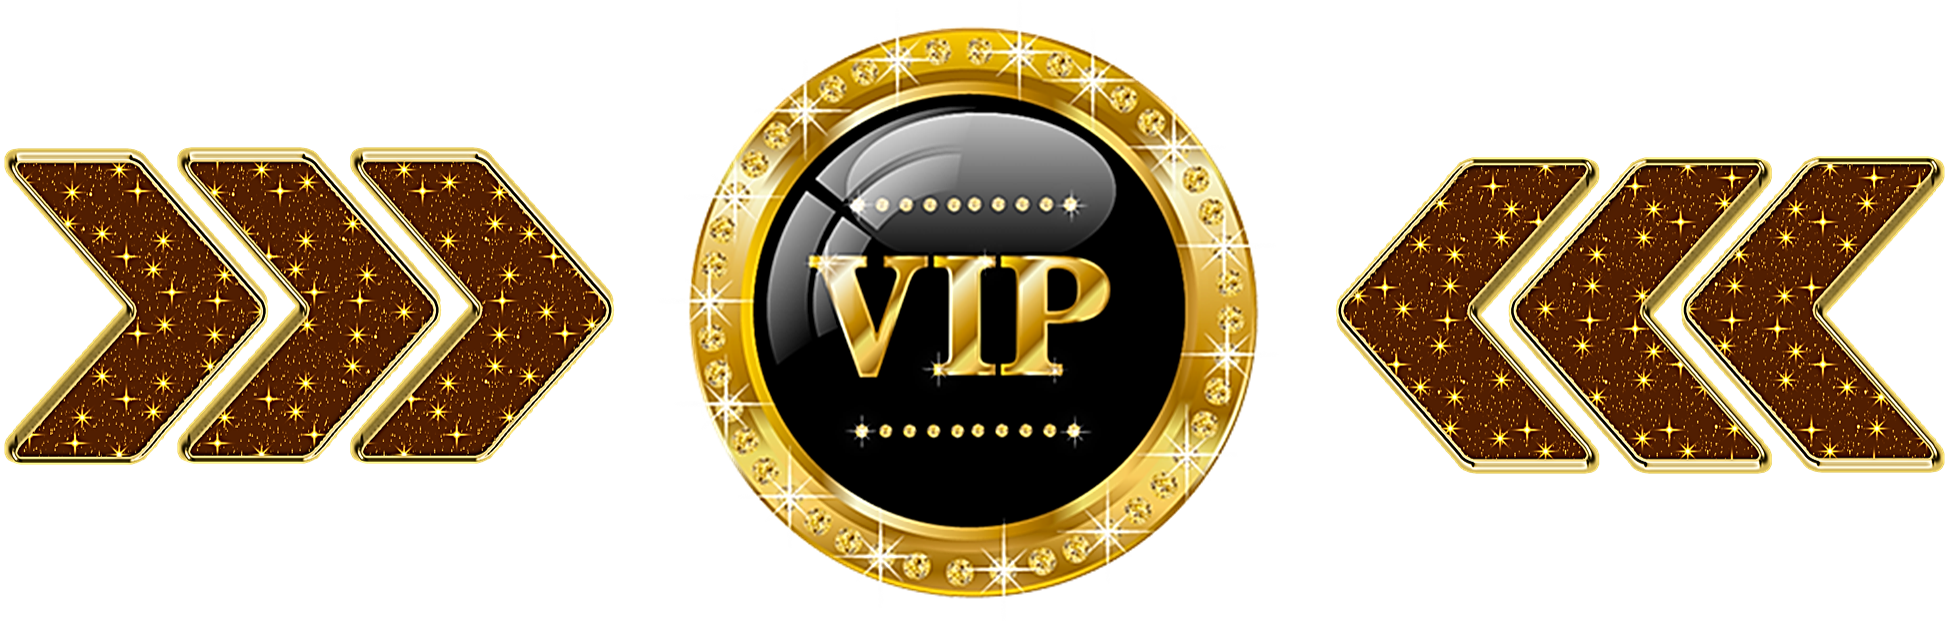 VIP PNG Free Download.